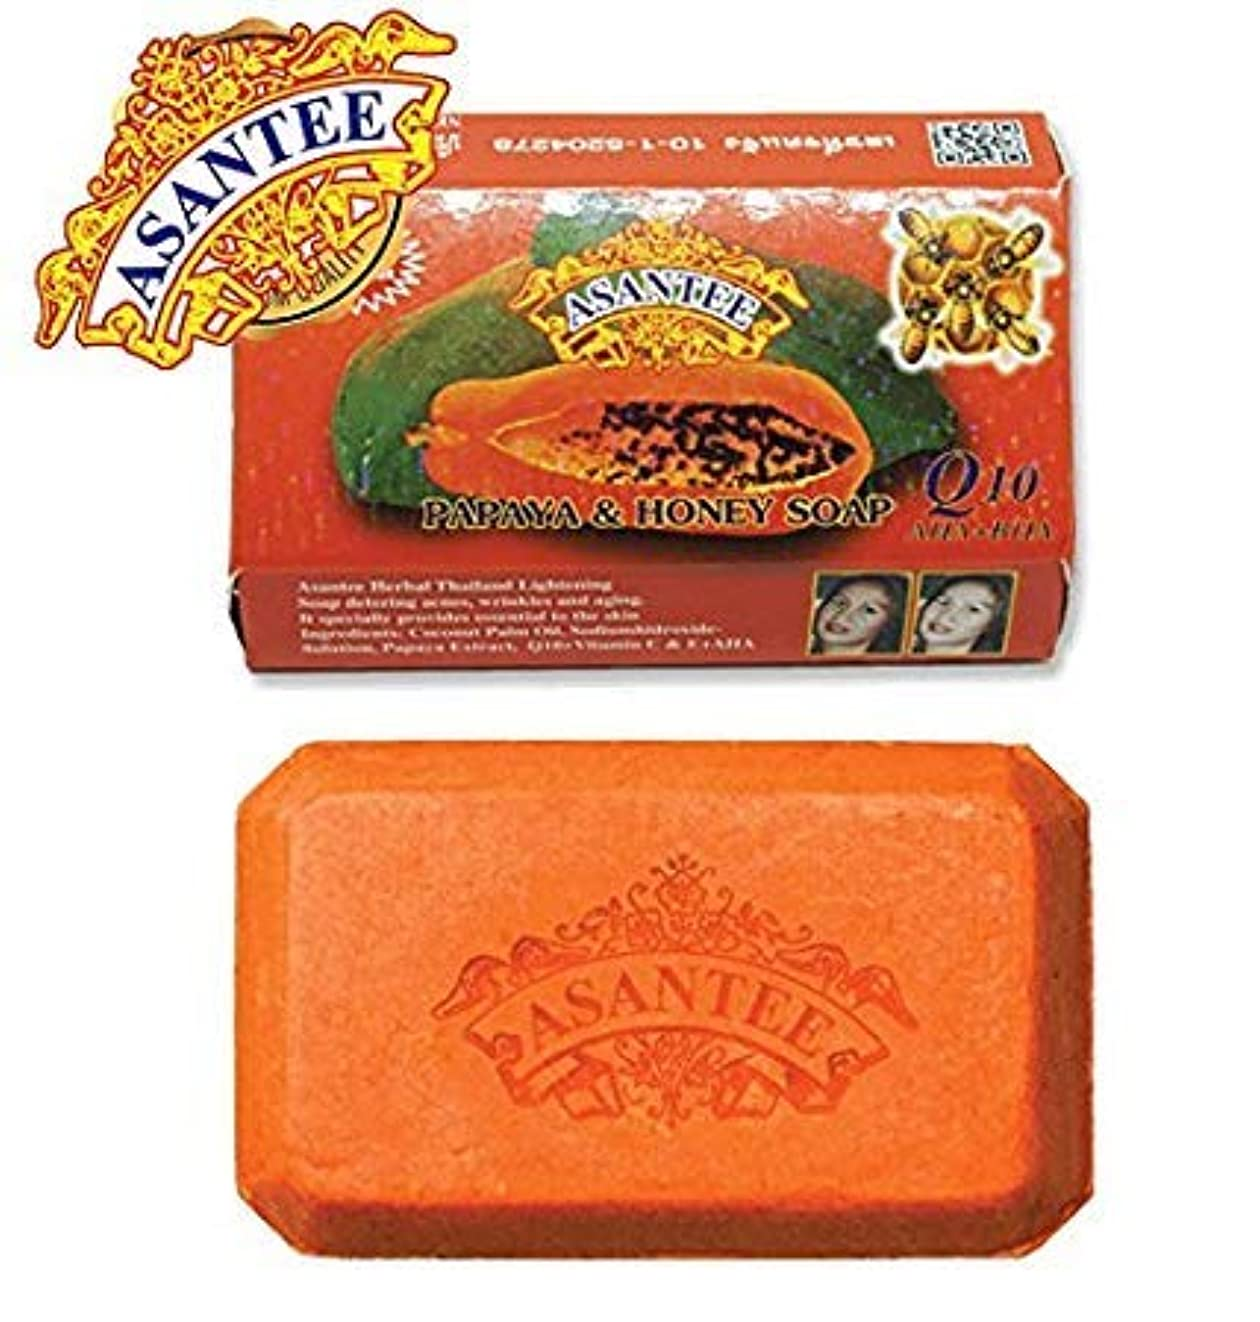 Asantee Thai Papaya Herbal Skin Whitening Soap 135g (1 pcs)